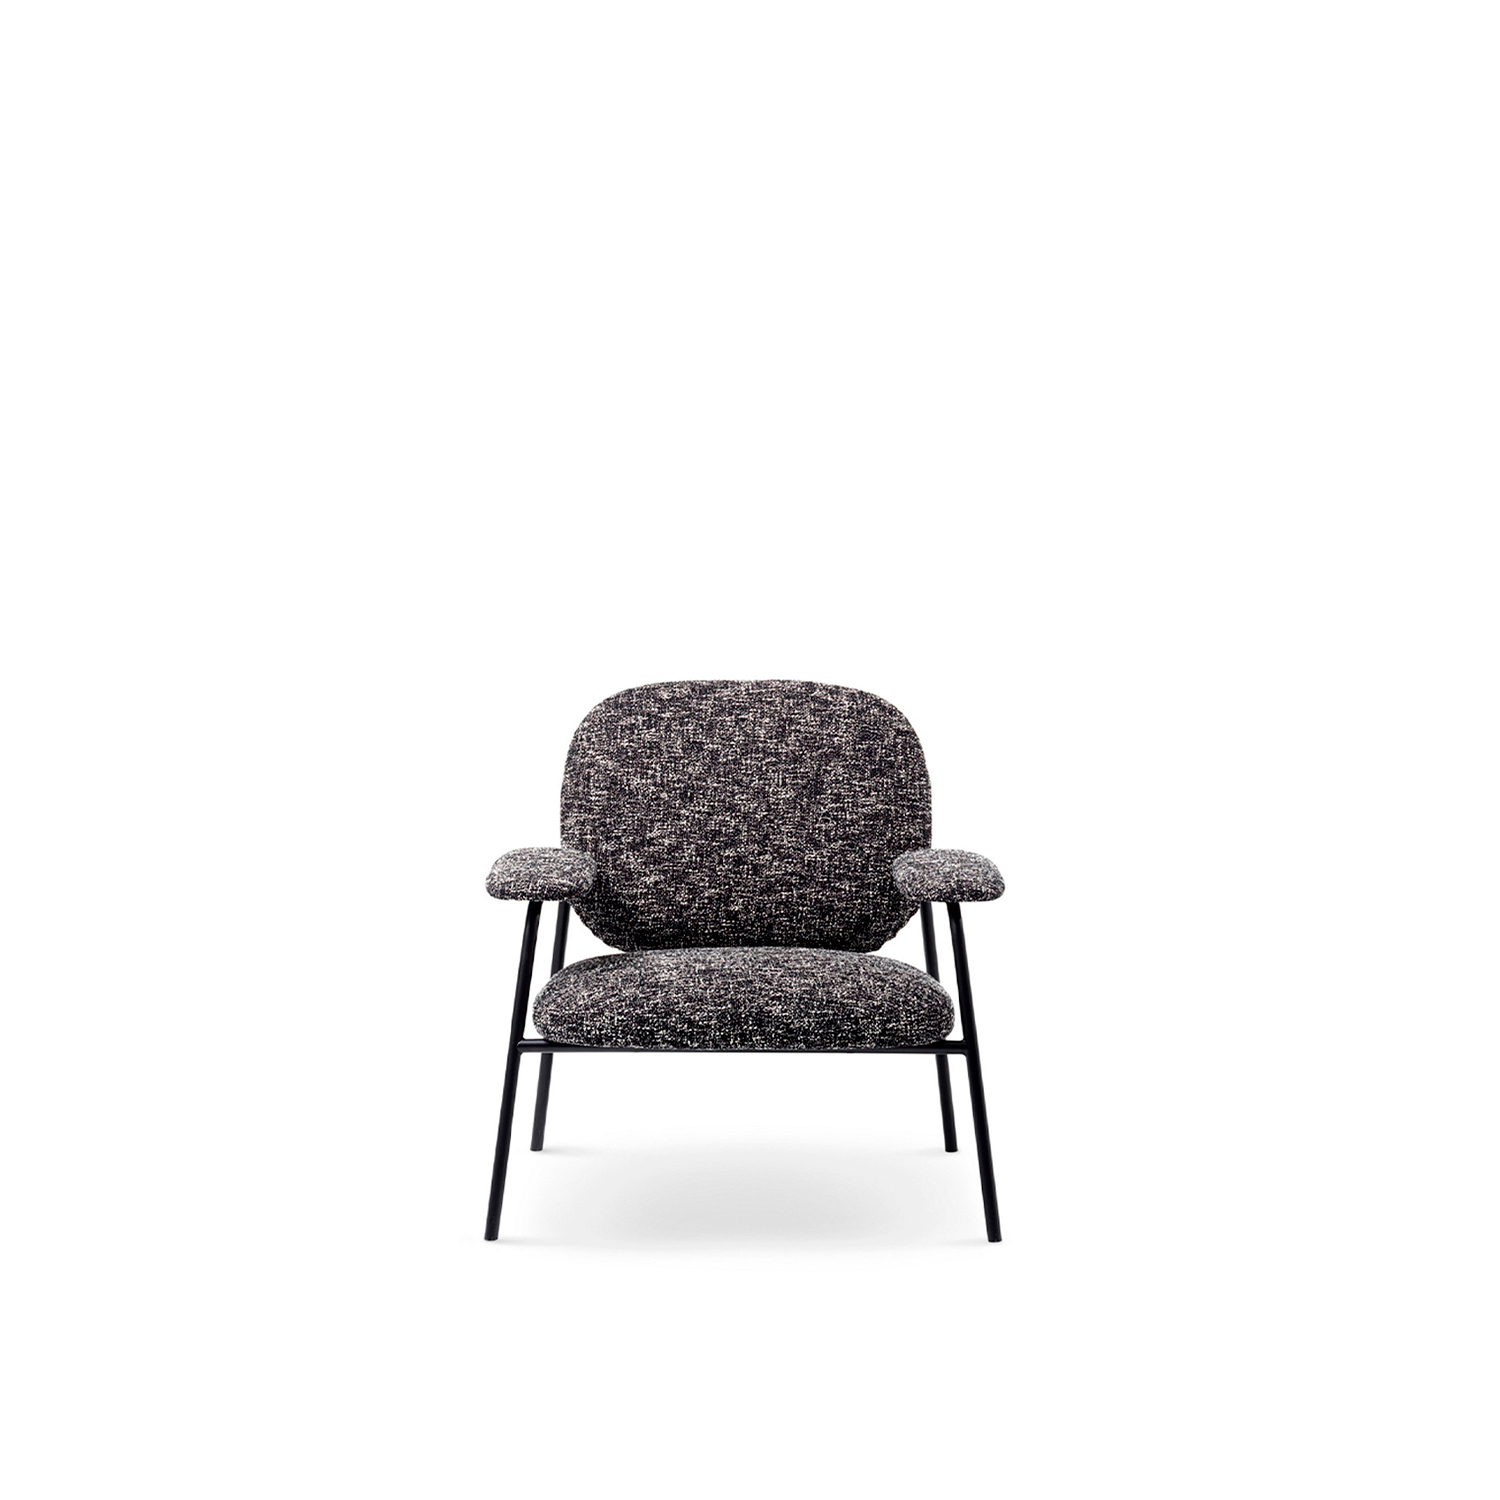 Philo Lounge Armchair  - Philo is a prefix of Greek origins that indicates love, propensity and empathy towards people and things. A metallic thread draws together a welcoming silhouette; it runs, turns, comes up and goes down, hugging and delicately supporting the upholstered surfaces. The agile dimensions give life to a seating system capable of existing in different spaces: home, offices and in places of meeting in general – of welcome and for relationship building. Philanthropic by nature this elegant and simple sofa has a lean yet grounded honest form. The design's character is communicated with an interplay of lines and colours. The metallic thread transforms into sewing thread and continues on to weft and warp creating a singular harmony.  Additional removable cover is available, please enquire for prices.  Structure: Matt Black   Additional removable cover is available, please enquire for prices. | Matter of Stuff